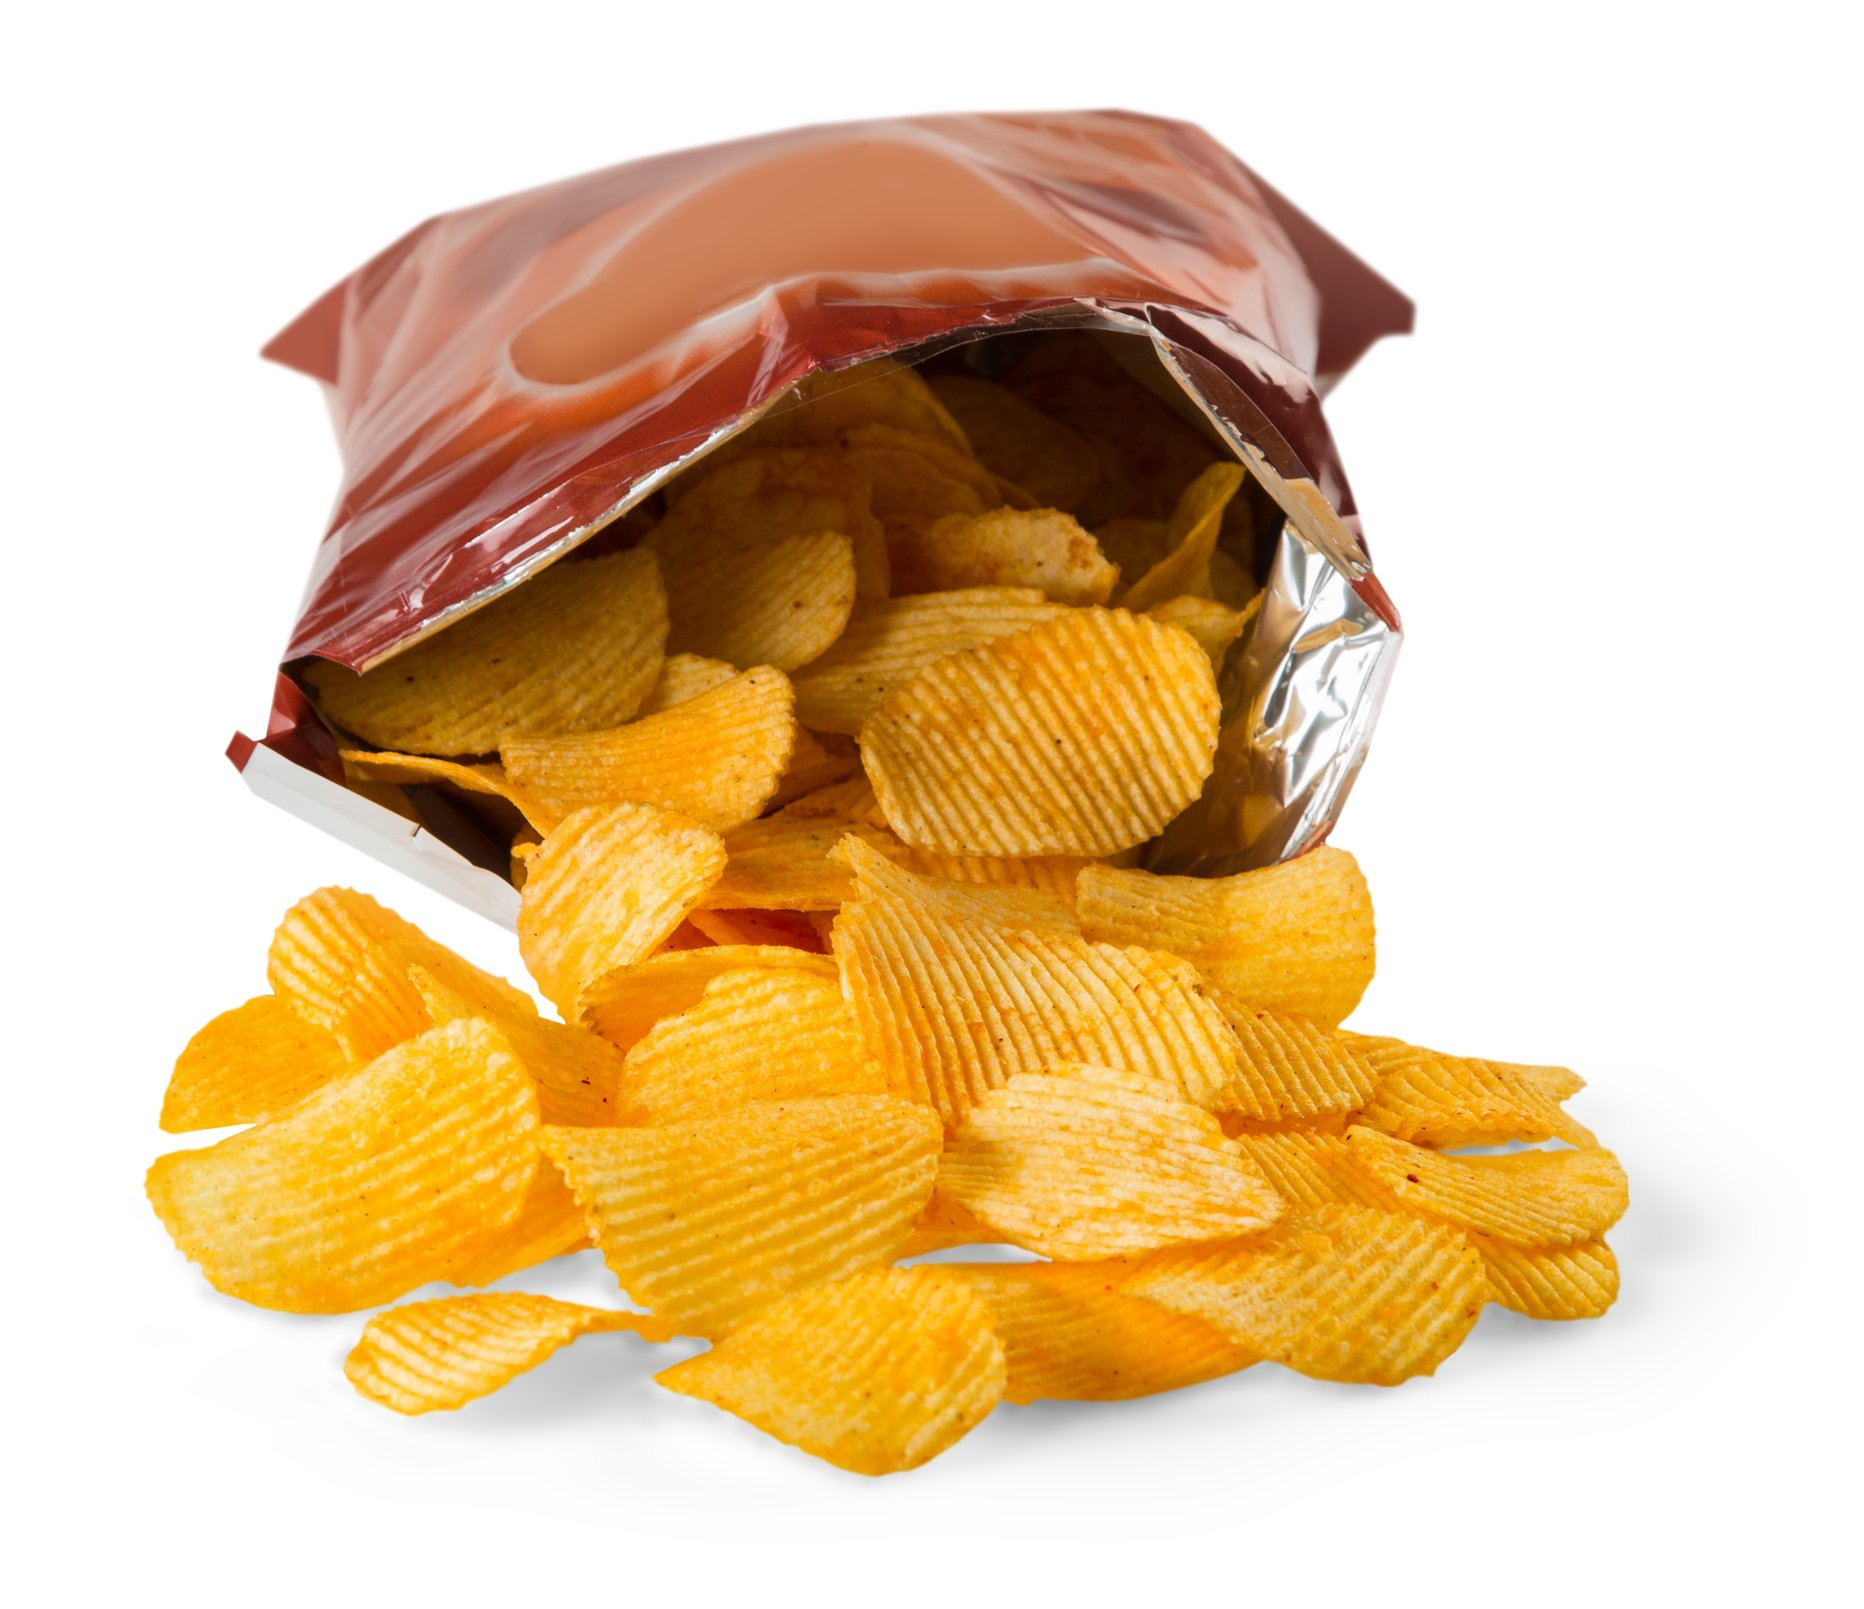 Open Bag of Chips